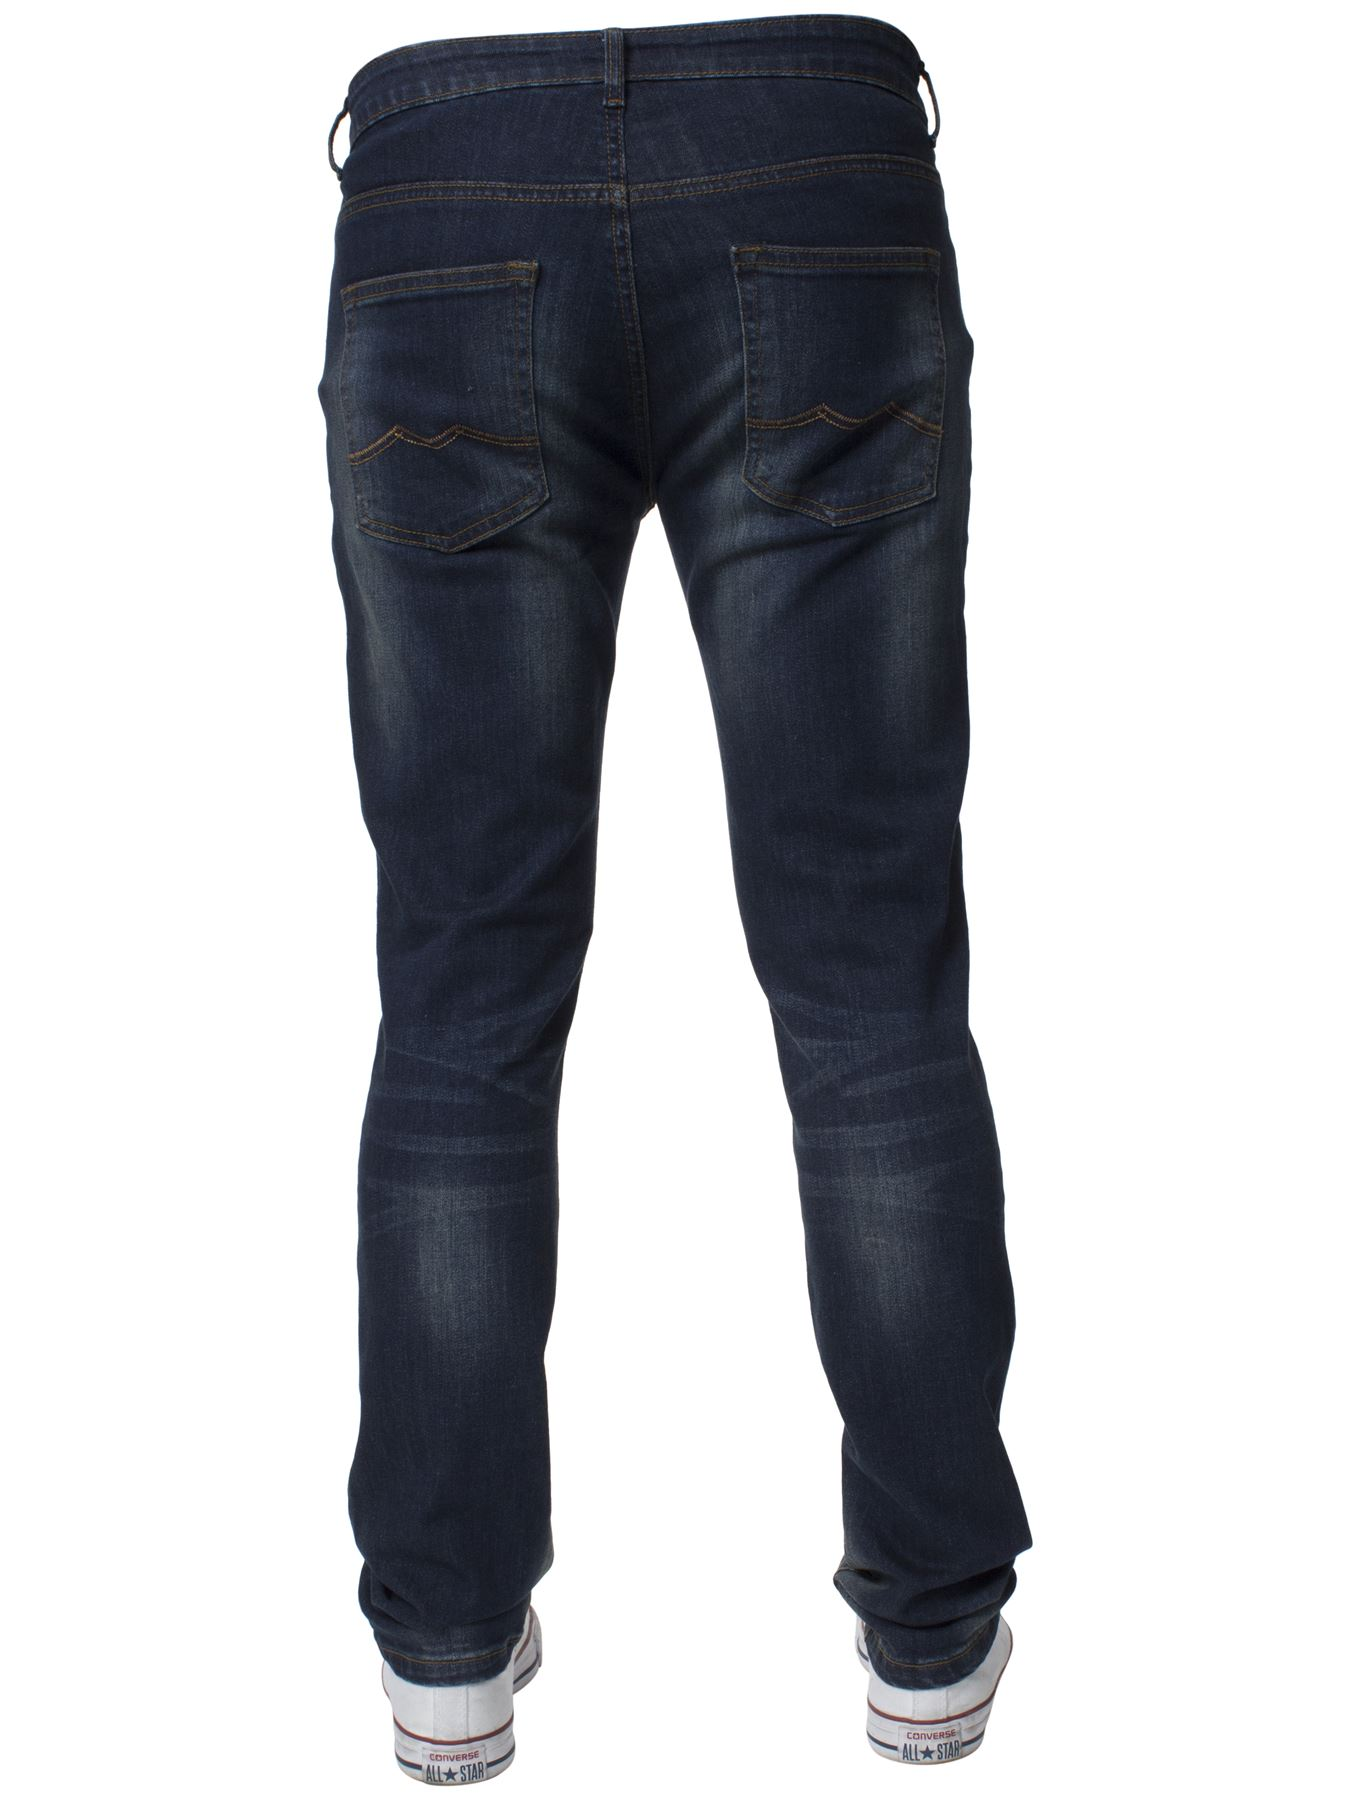 Mens-Skinny-Stretch-Jeans-Slim-Fit-Flex-Denim-Trousers-Pants-King-Sizes-by-Kruze thumbnail 18